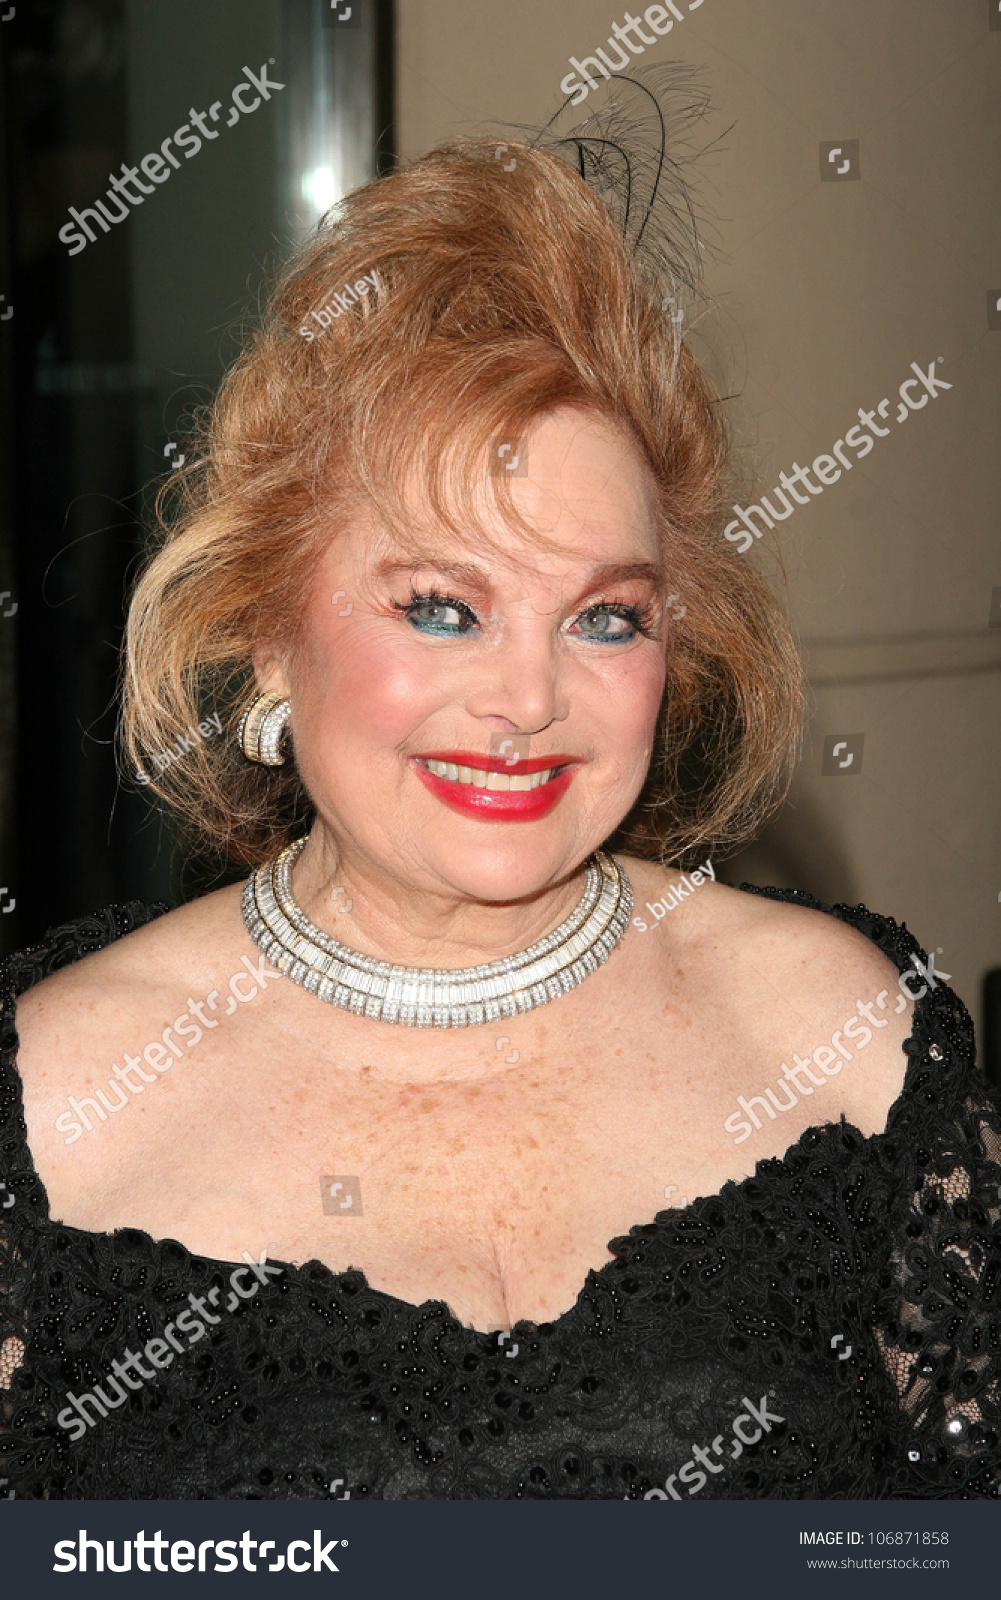 Carol Connors (actress) Carol Connors (actress) new foto